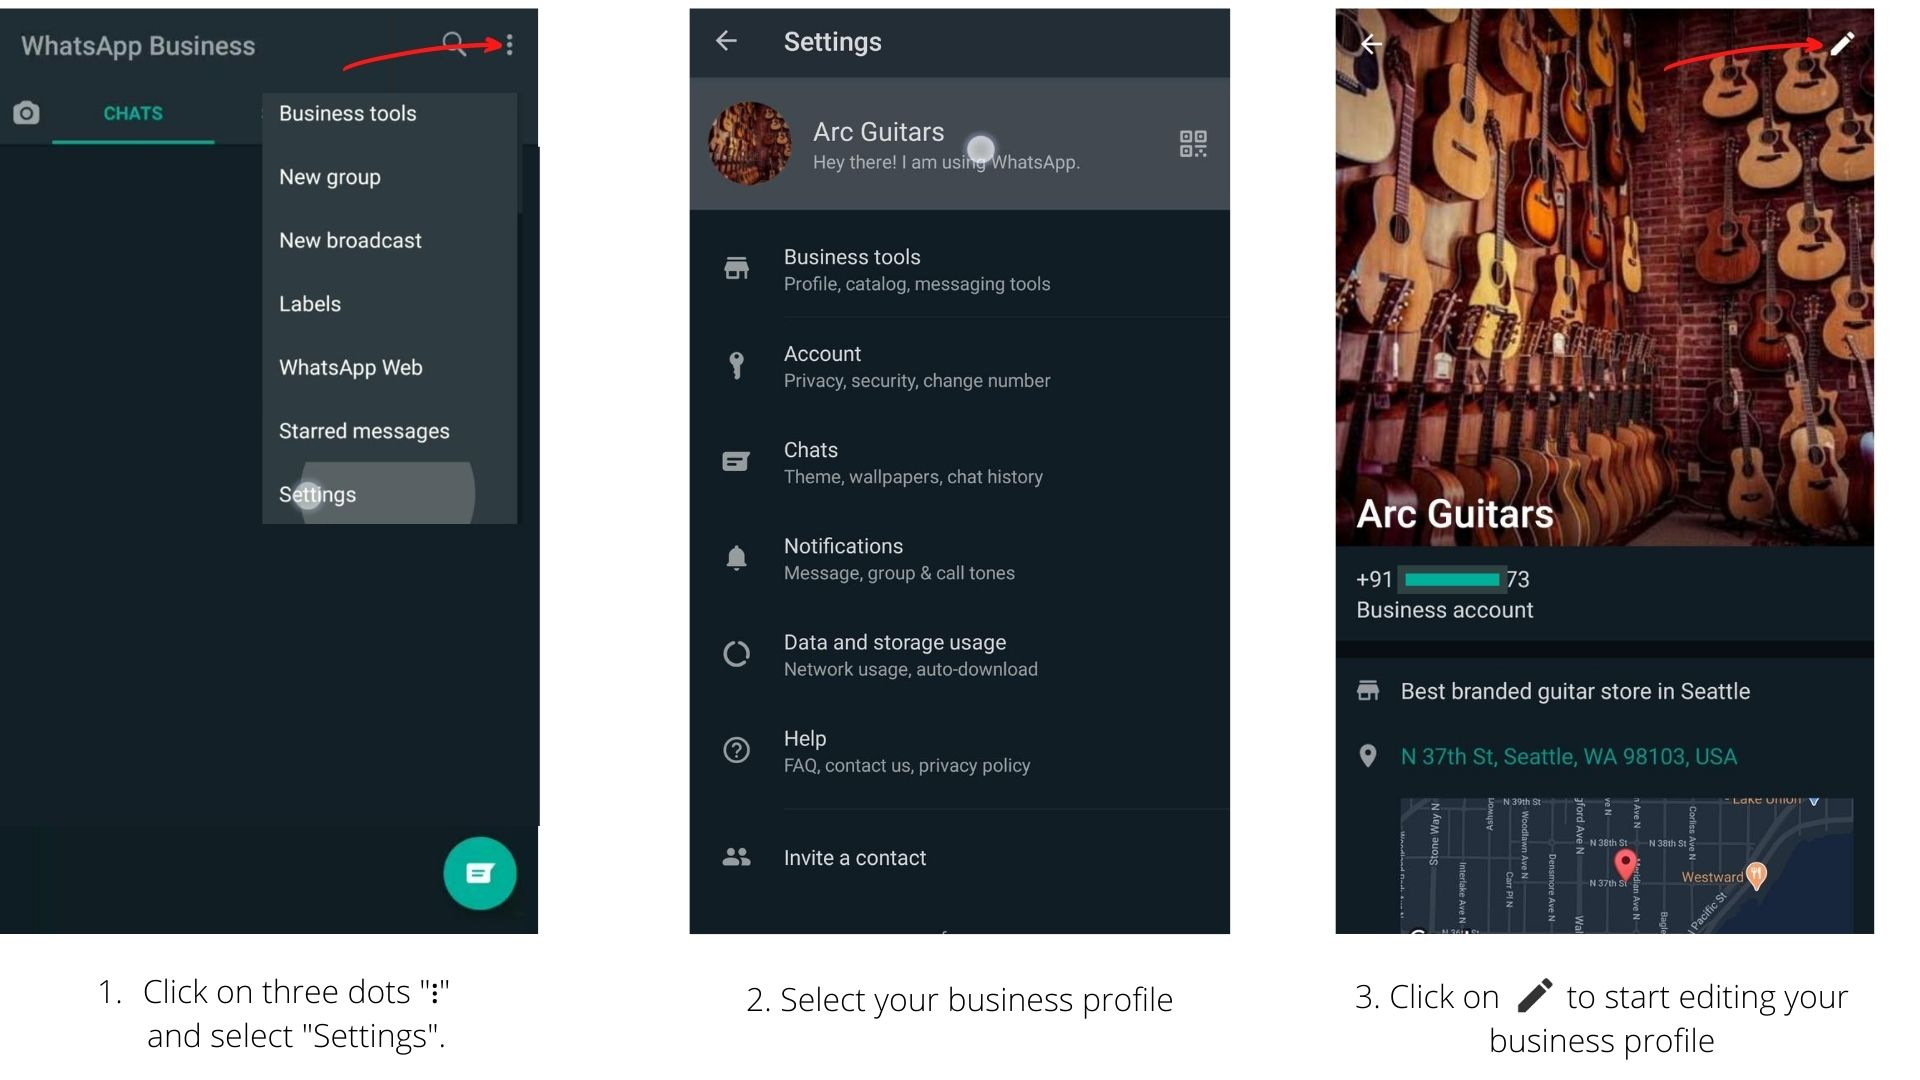 Whatsapp business setting menu